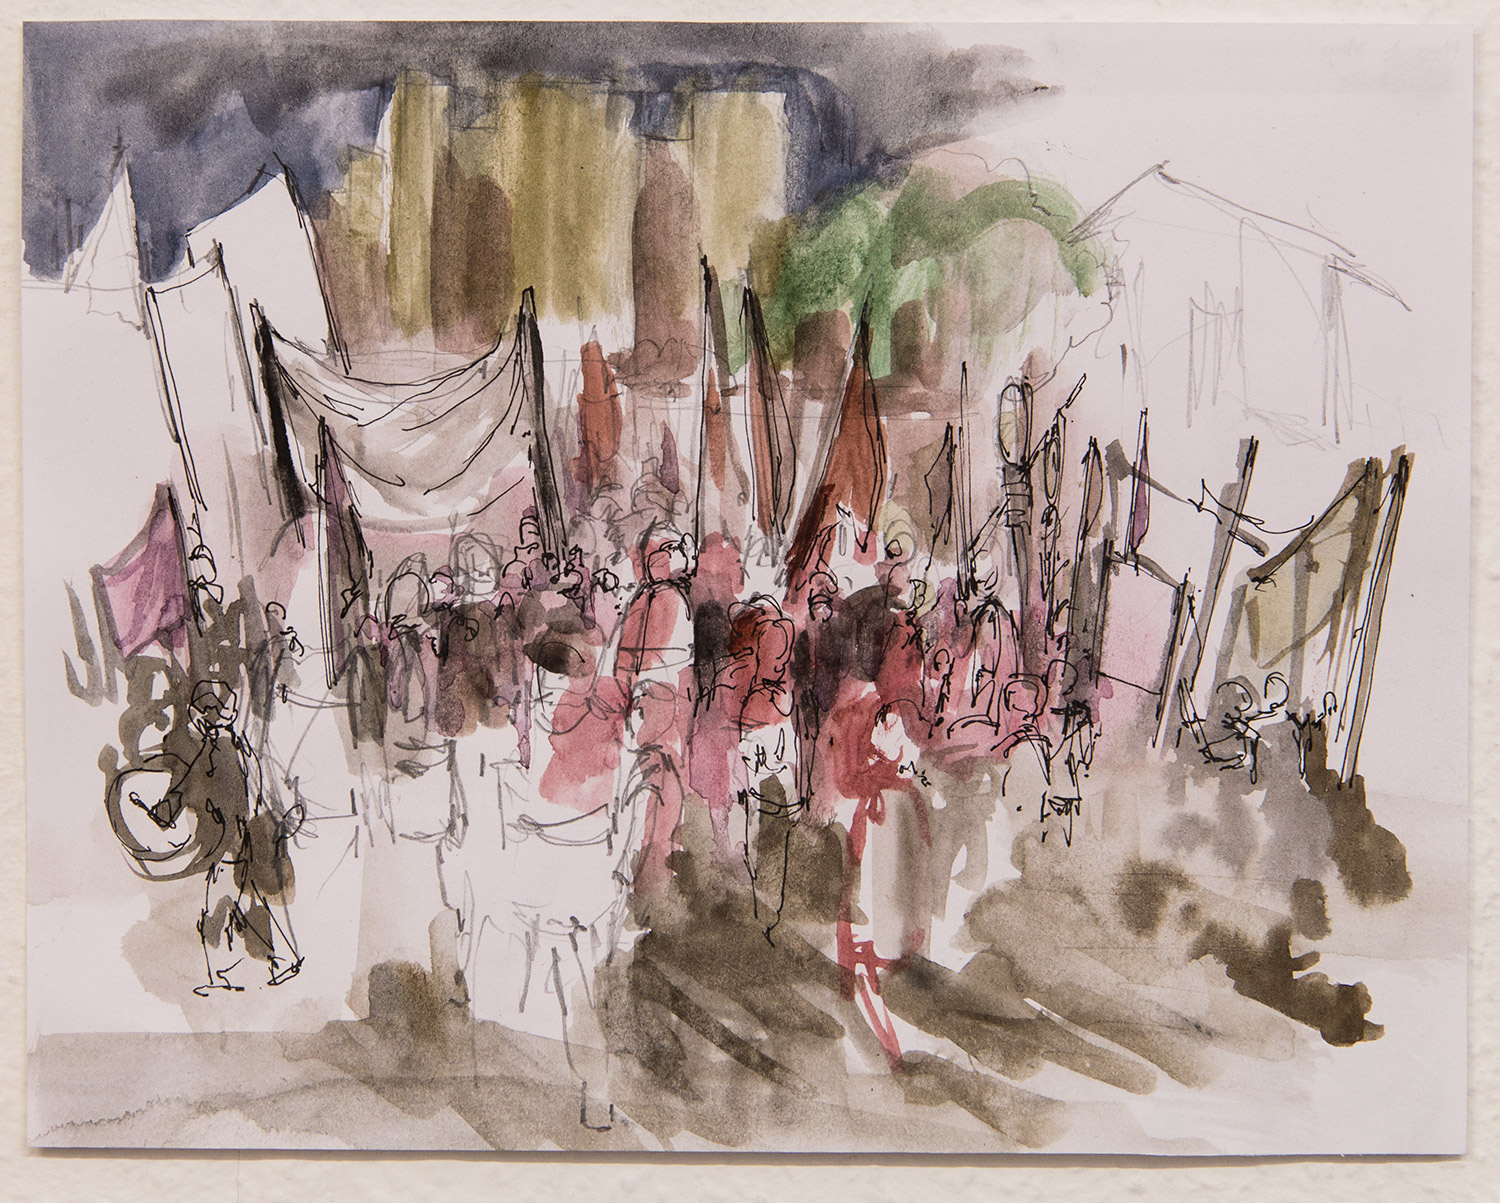 Plaza de Mayo - 8 de Marzo; 24 x 18 cm; watercolour, ink and pencil on paper; 2017